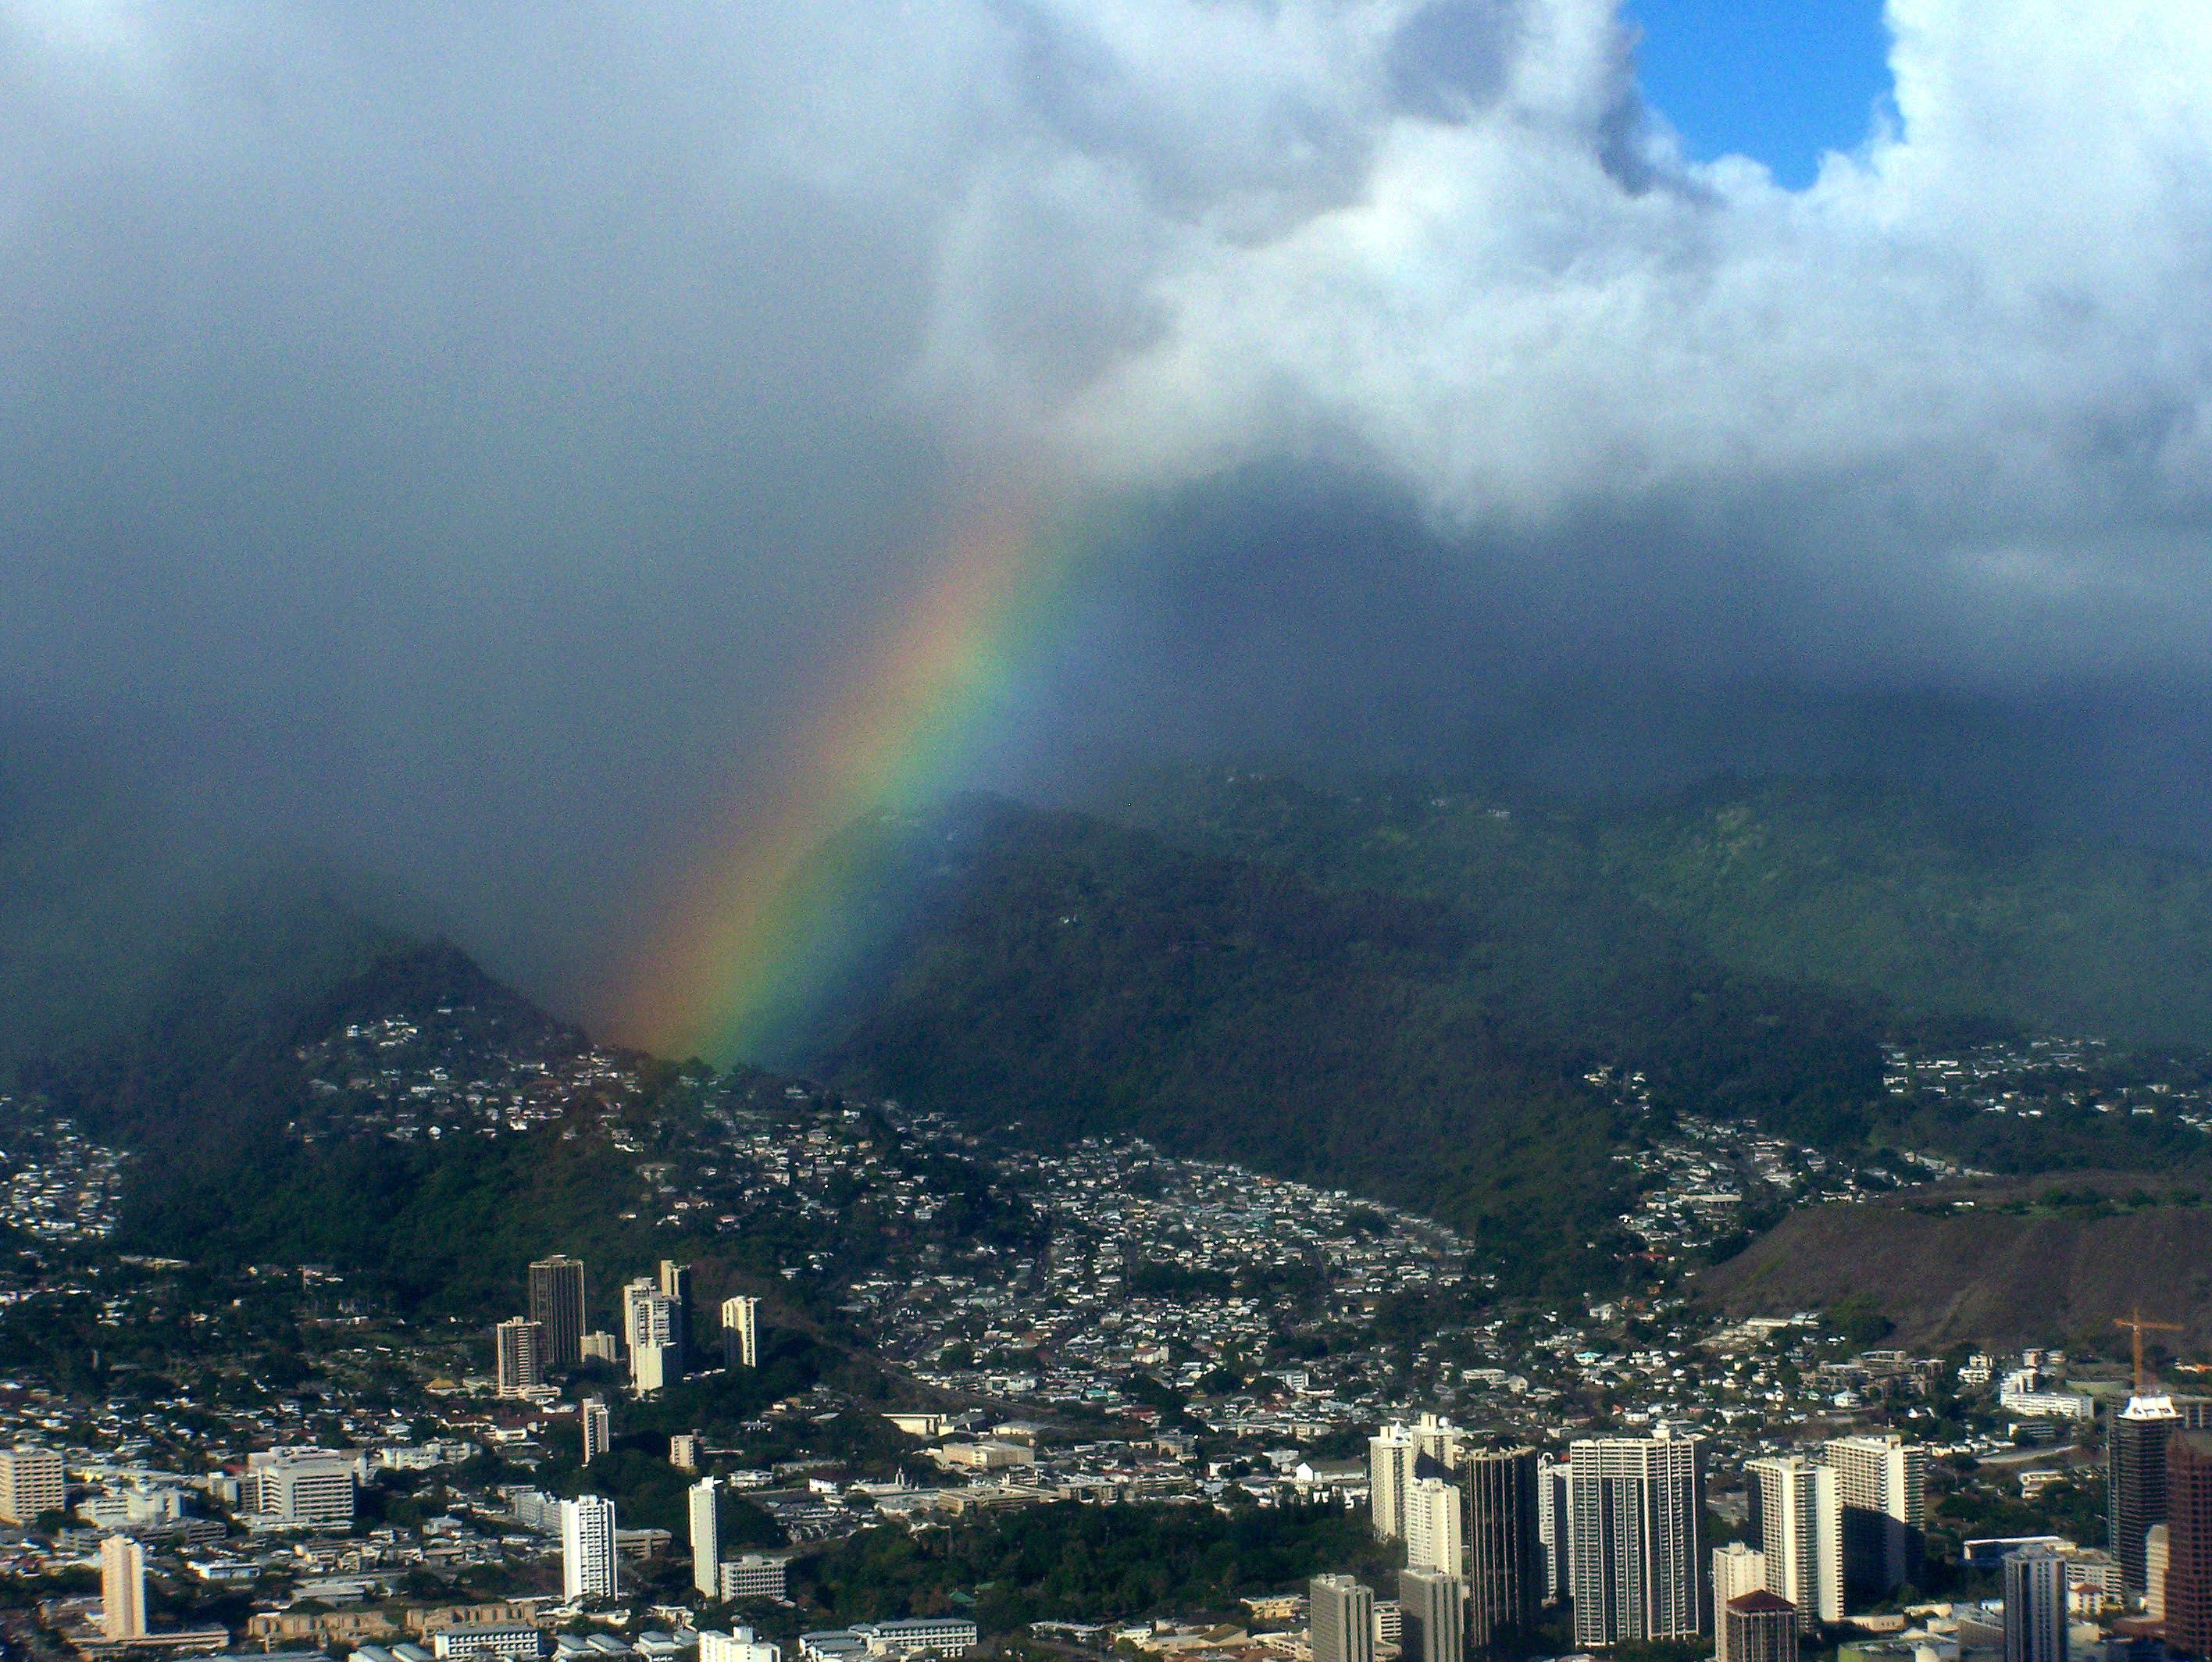 A rainbow in Honolulu.